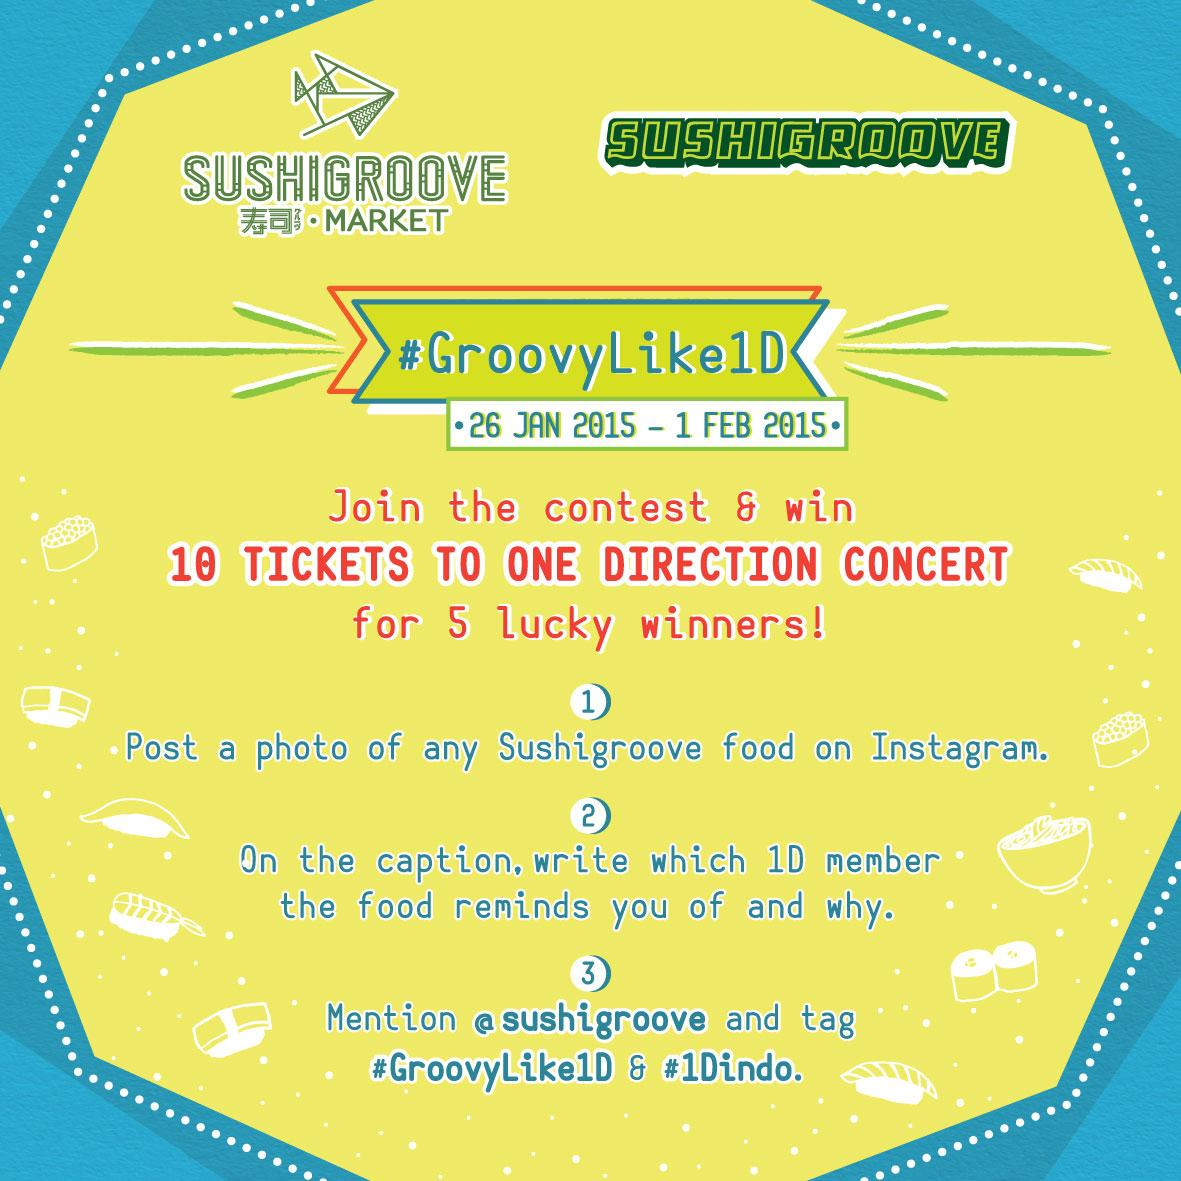 Win 10 tickets to #OneDirection's concert! Follow @Sushigroove on Instagram & join #GroovyLike1D! https://t.co/lbjPbZxKfx :D #1Dindo